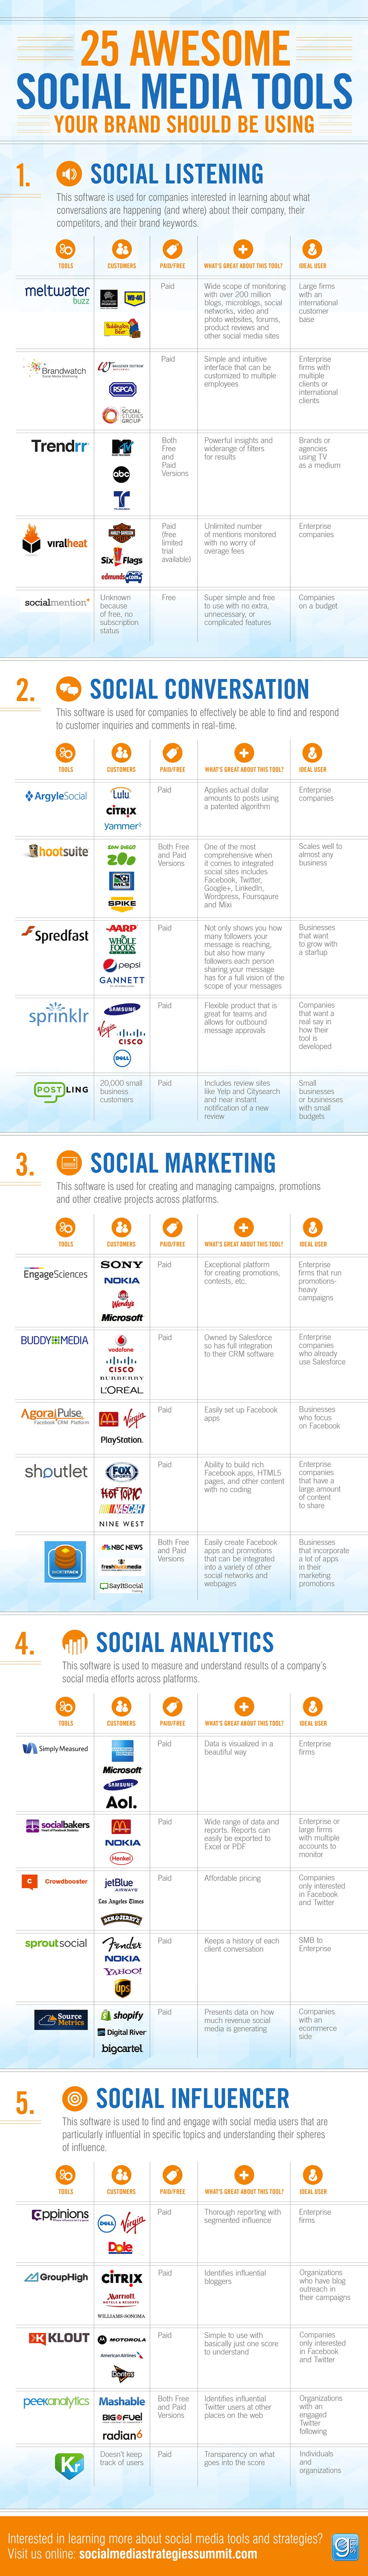 Tools Keeping Track Of Requirements Awesome Social Media Tools For Your Brand Dae